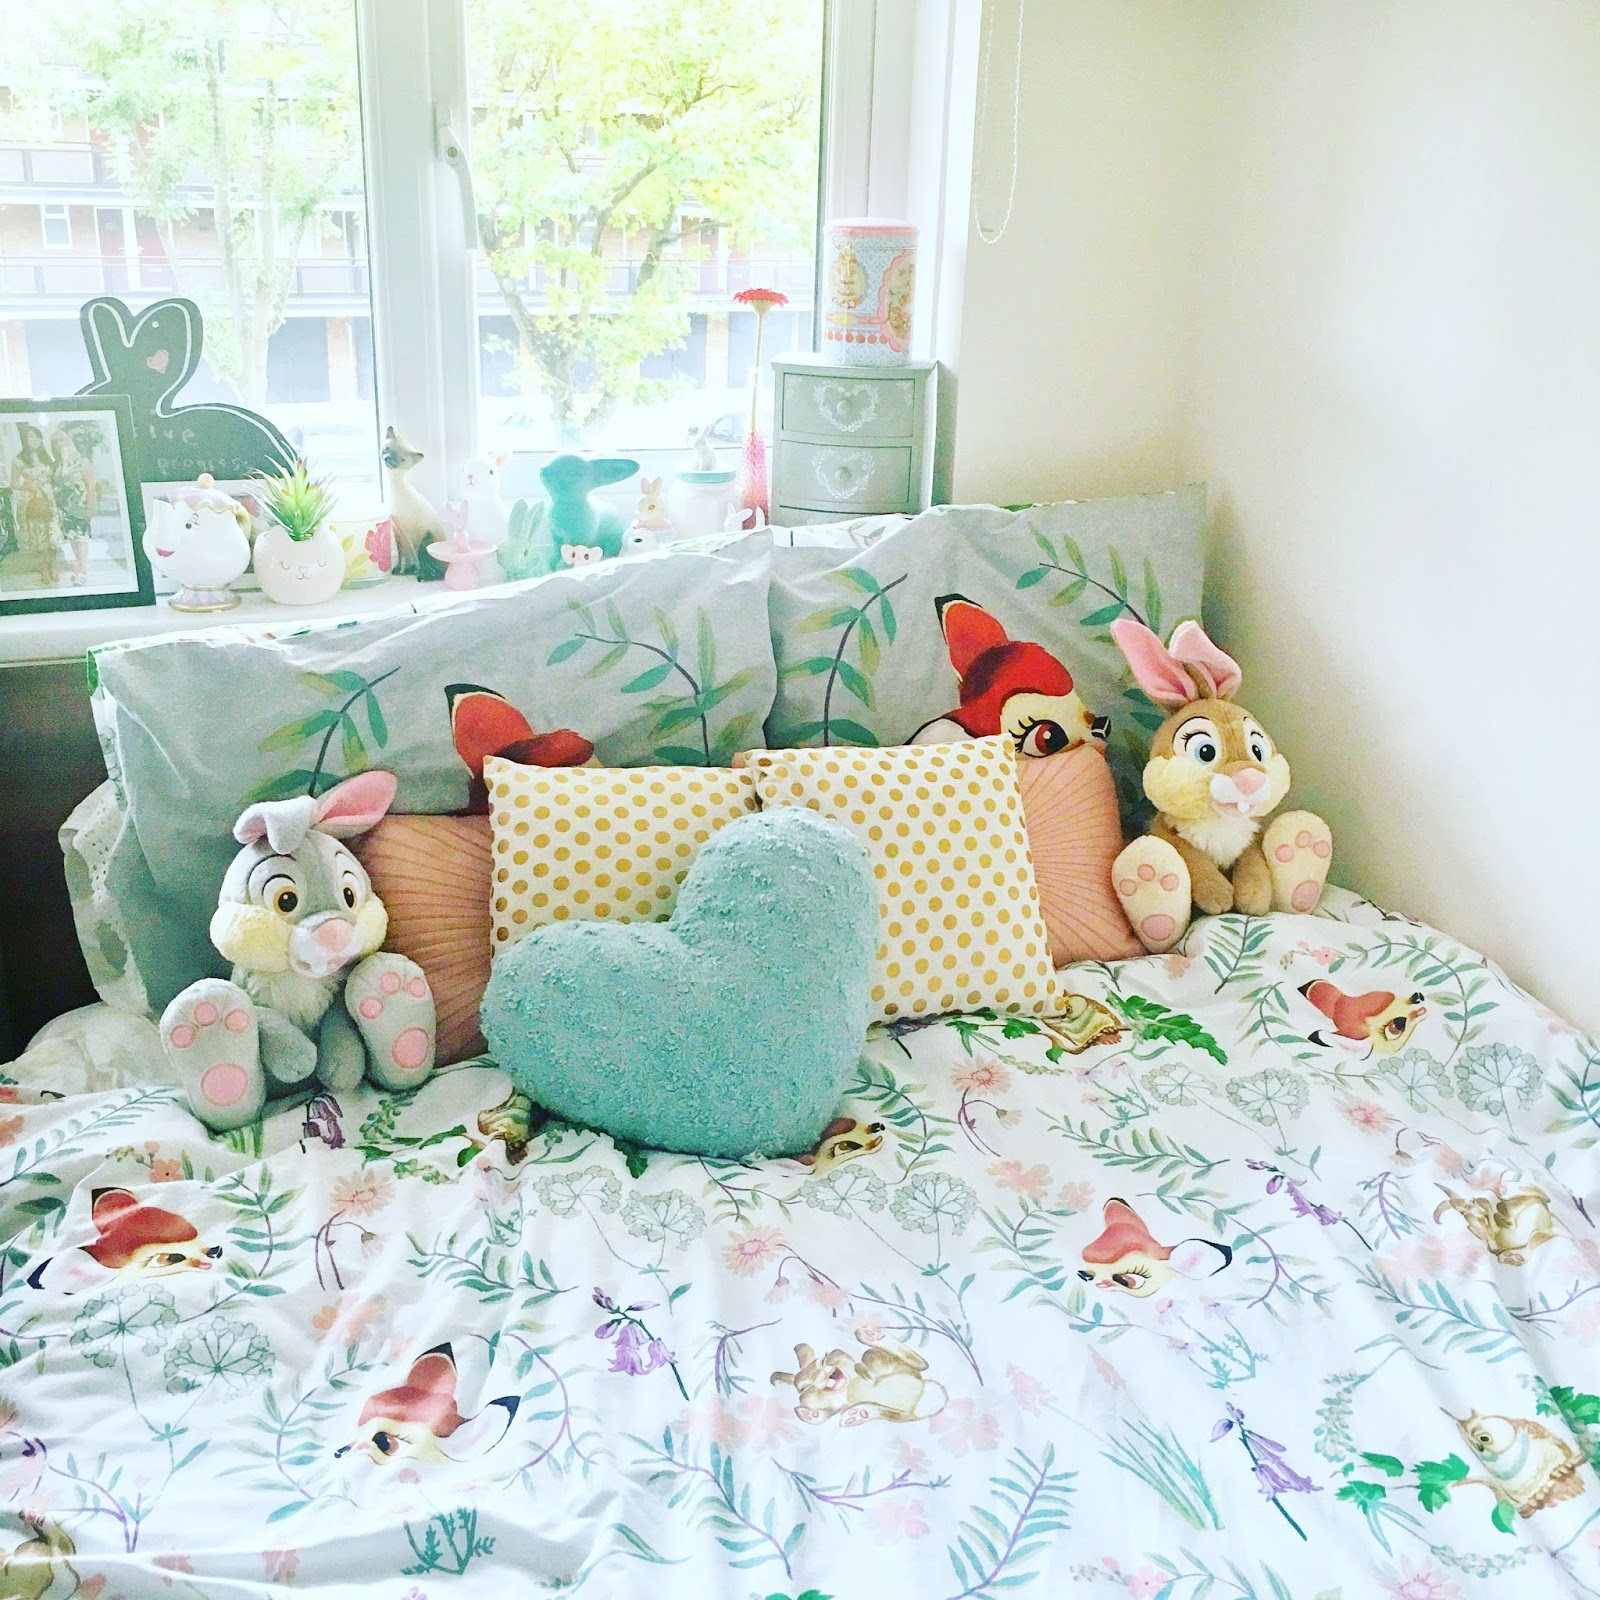 renabelle primark haul disney bambi range blogmas day 8. Black Bedroom Furniture Sets. Home Design Ideas